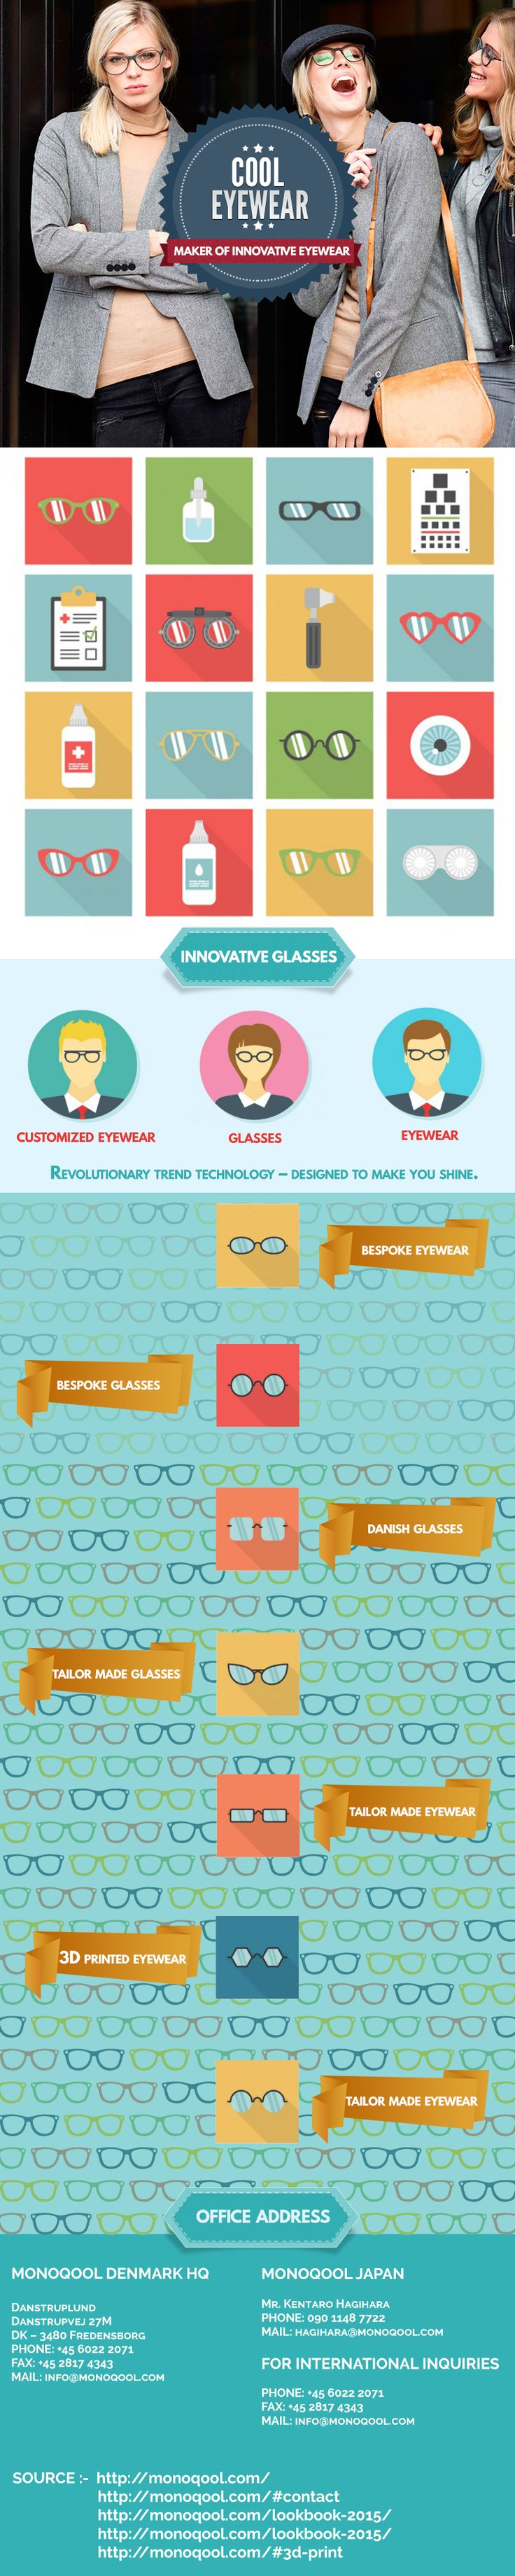 Try these new and attractive innovative glasses at affordable or you can say at suitable price.large collection of glasses with different color.we also offer Innovative Eyewear,Cool Glasses,cool eyewear,danish eyewear,danish glasses etc.